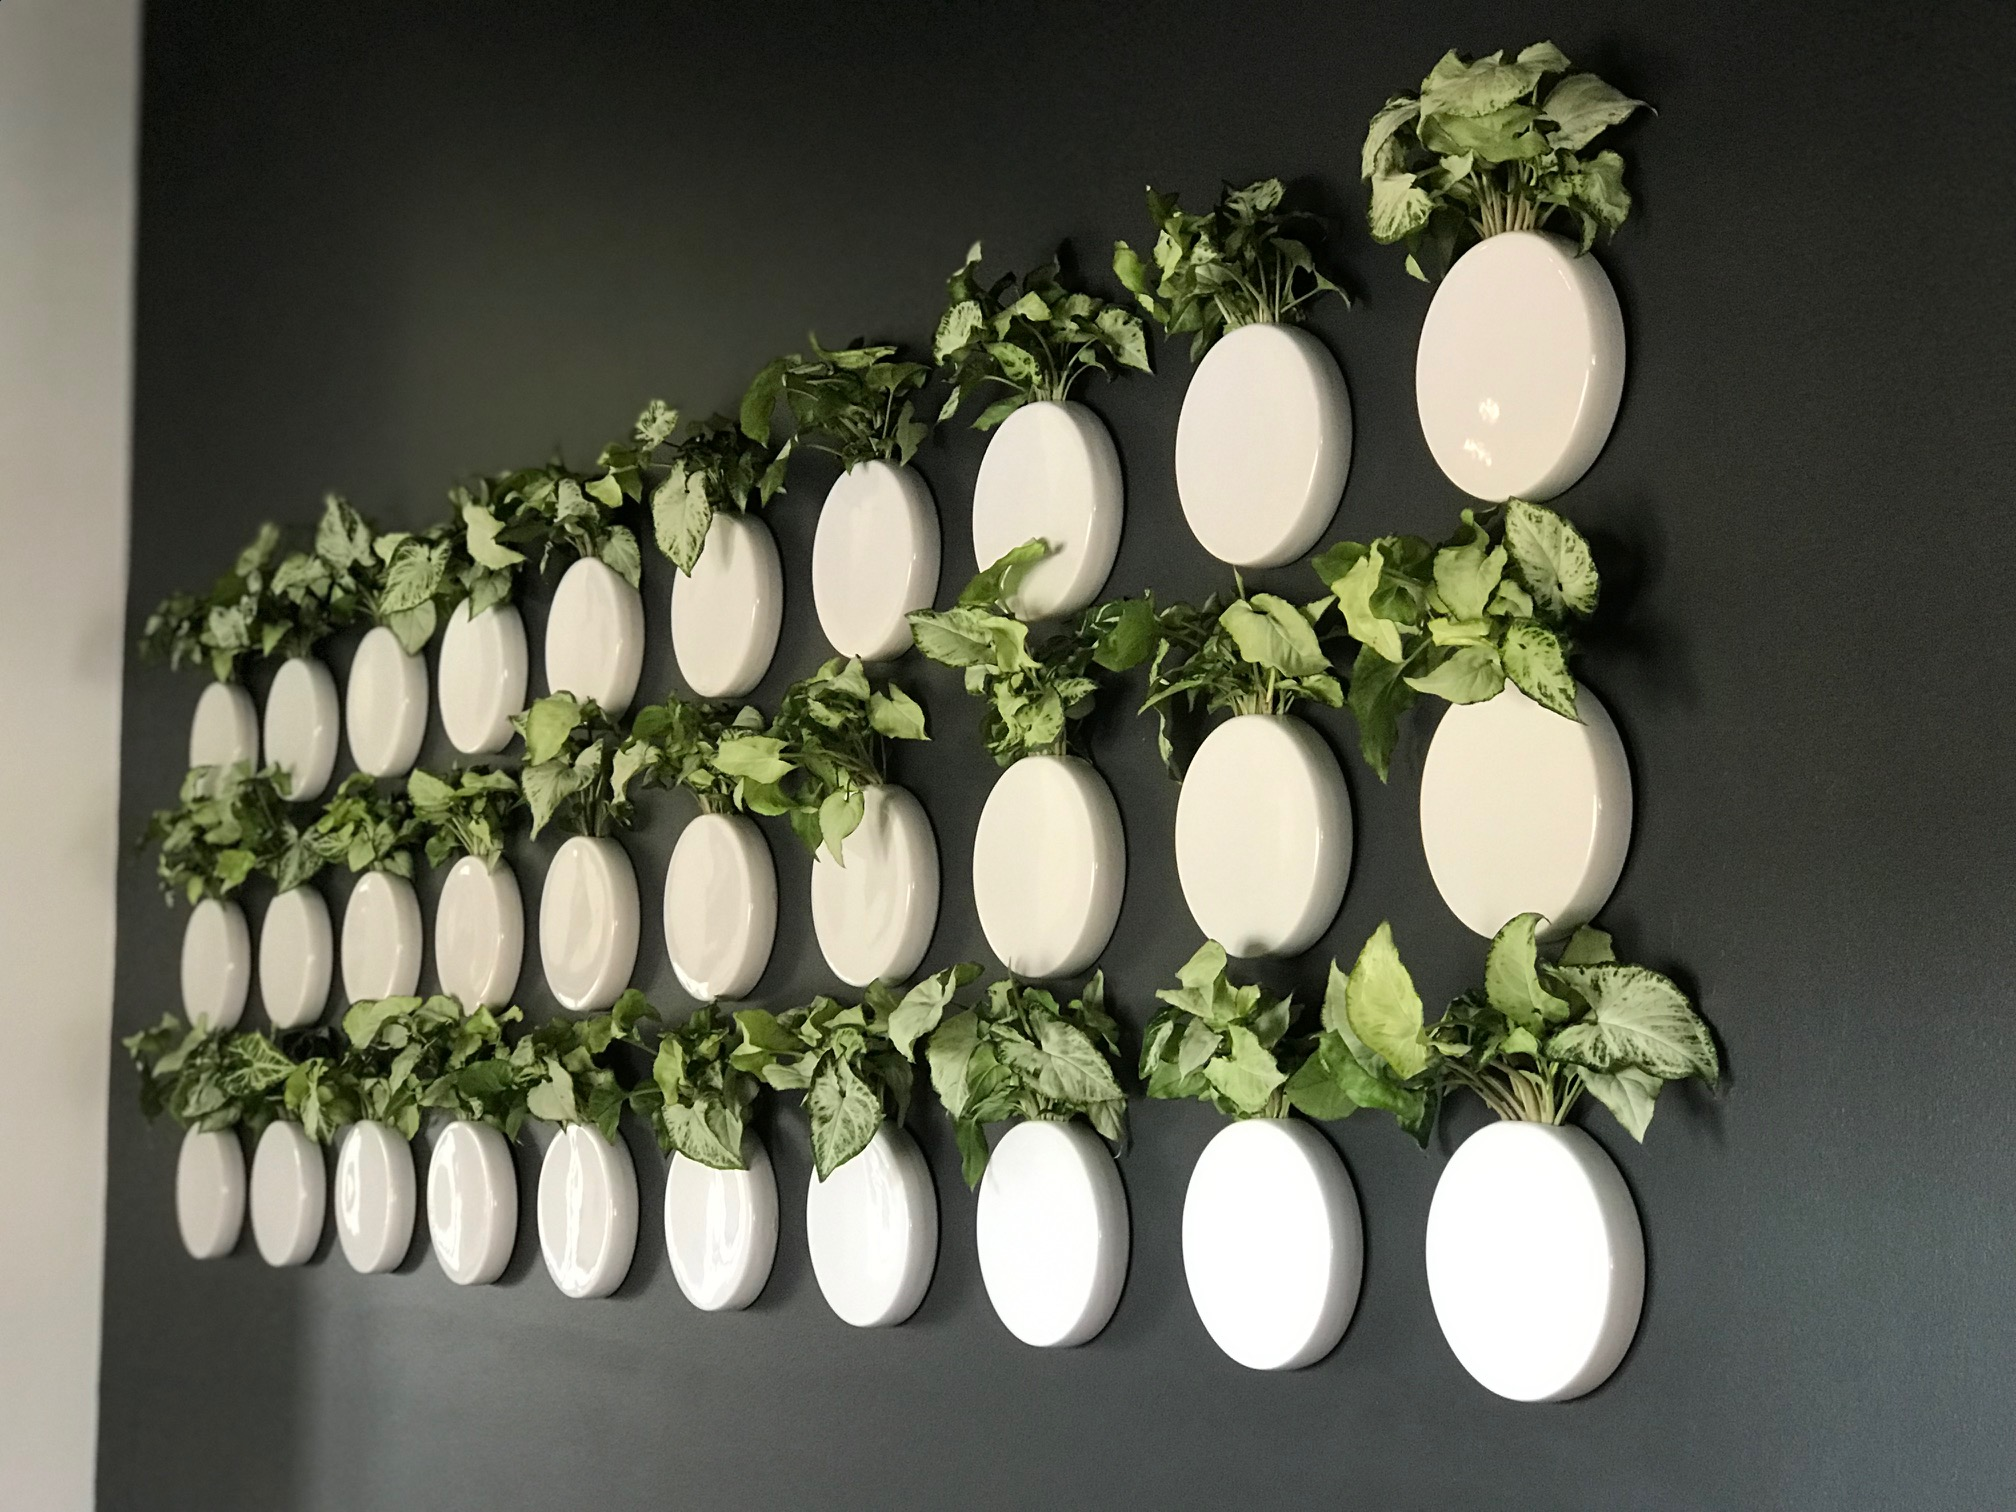 Commercial Installations - I will work with you to design & create a plant installation to suit your business. I also offer maintenance packages.Previous Installations include:- BIG Cork Vineyards, Maryland